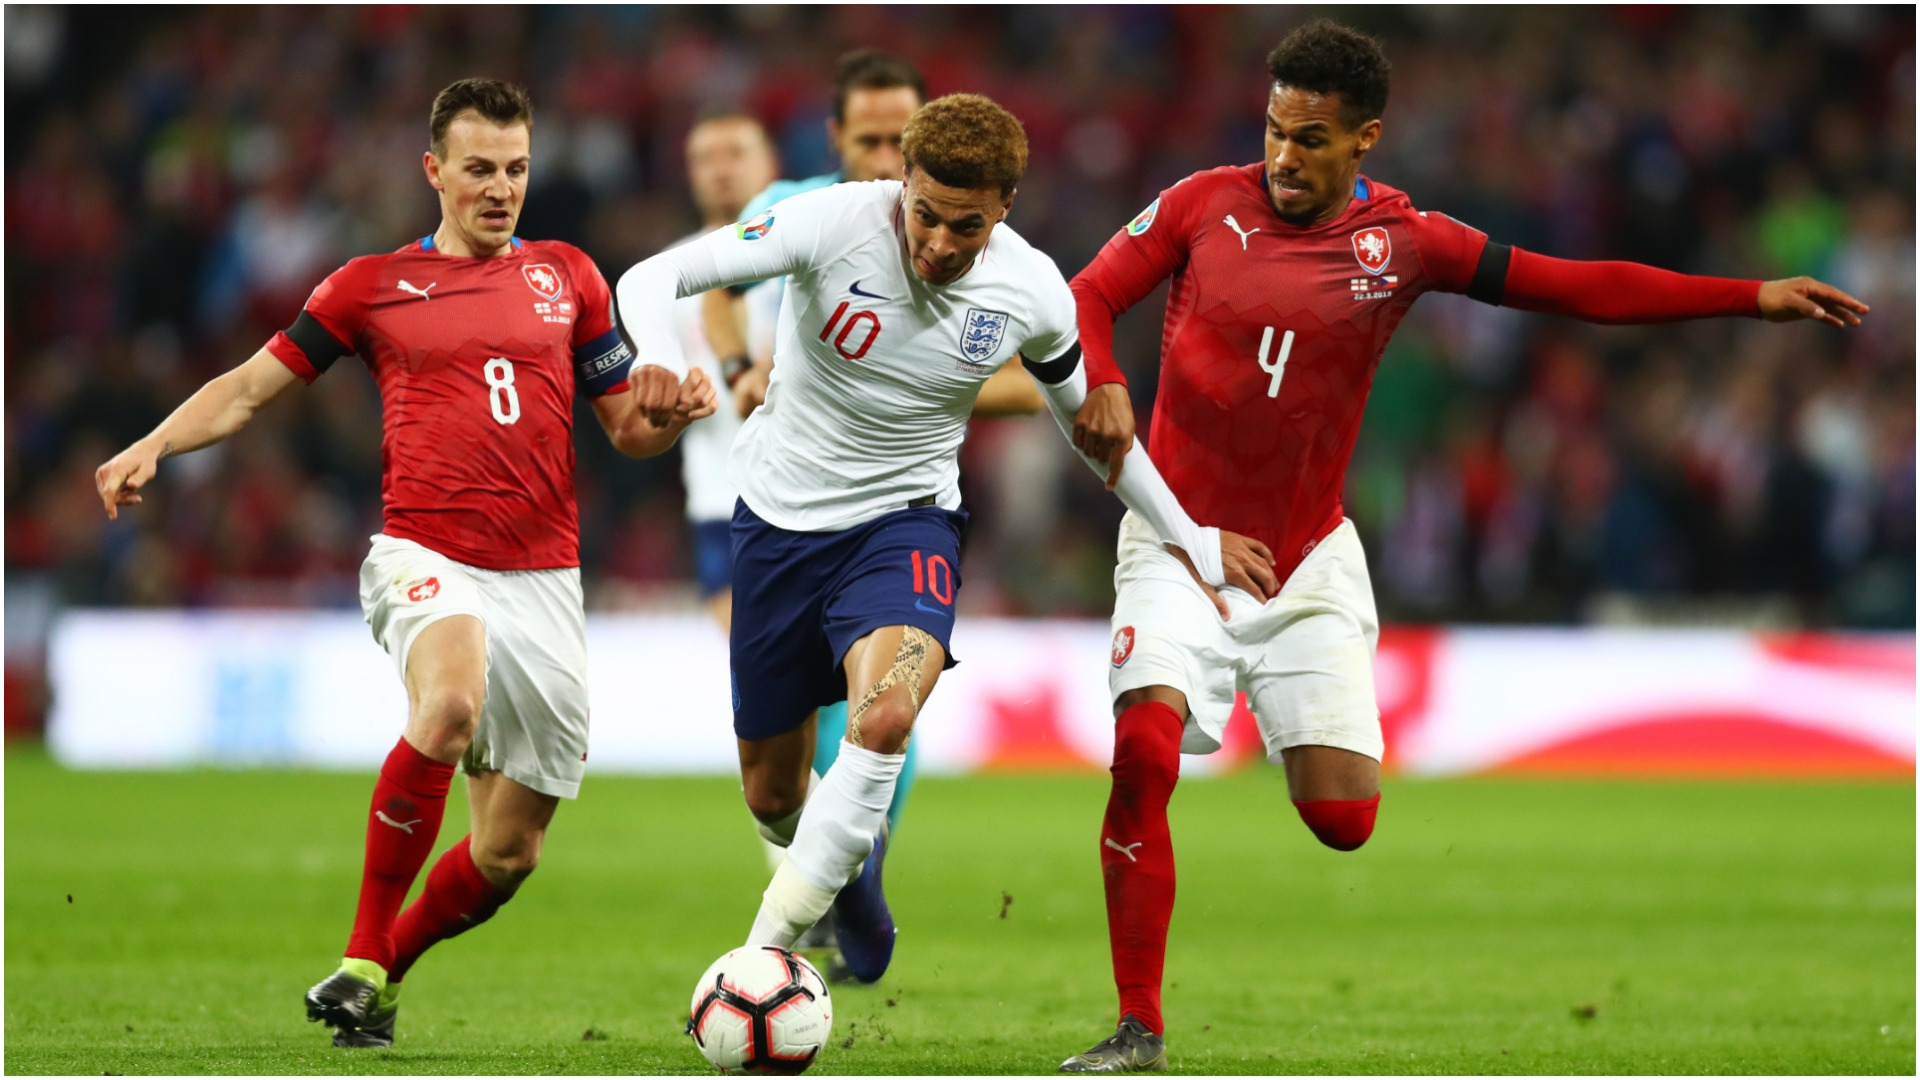 Dele Alli in action against the Czech Republic